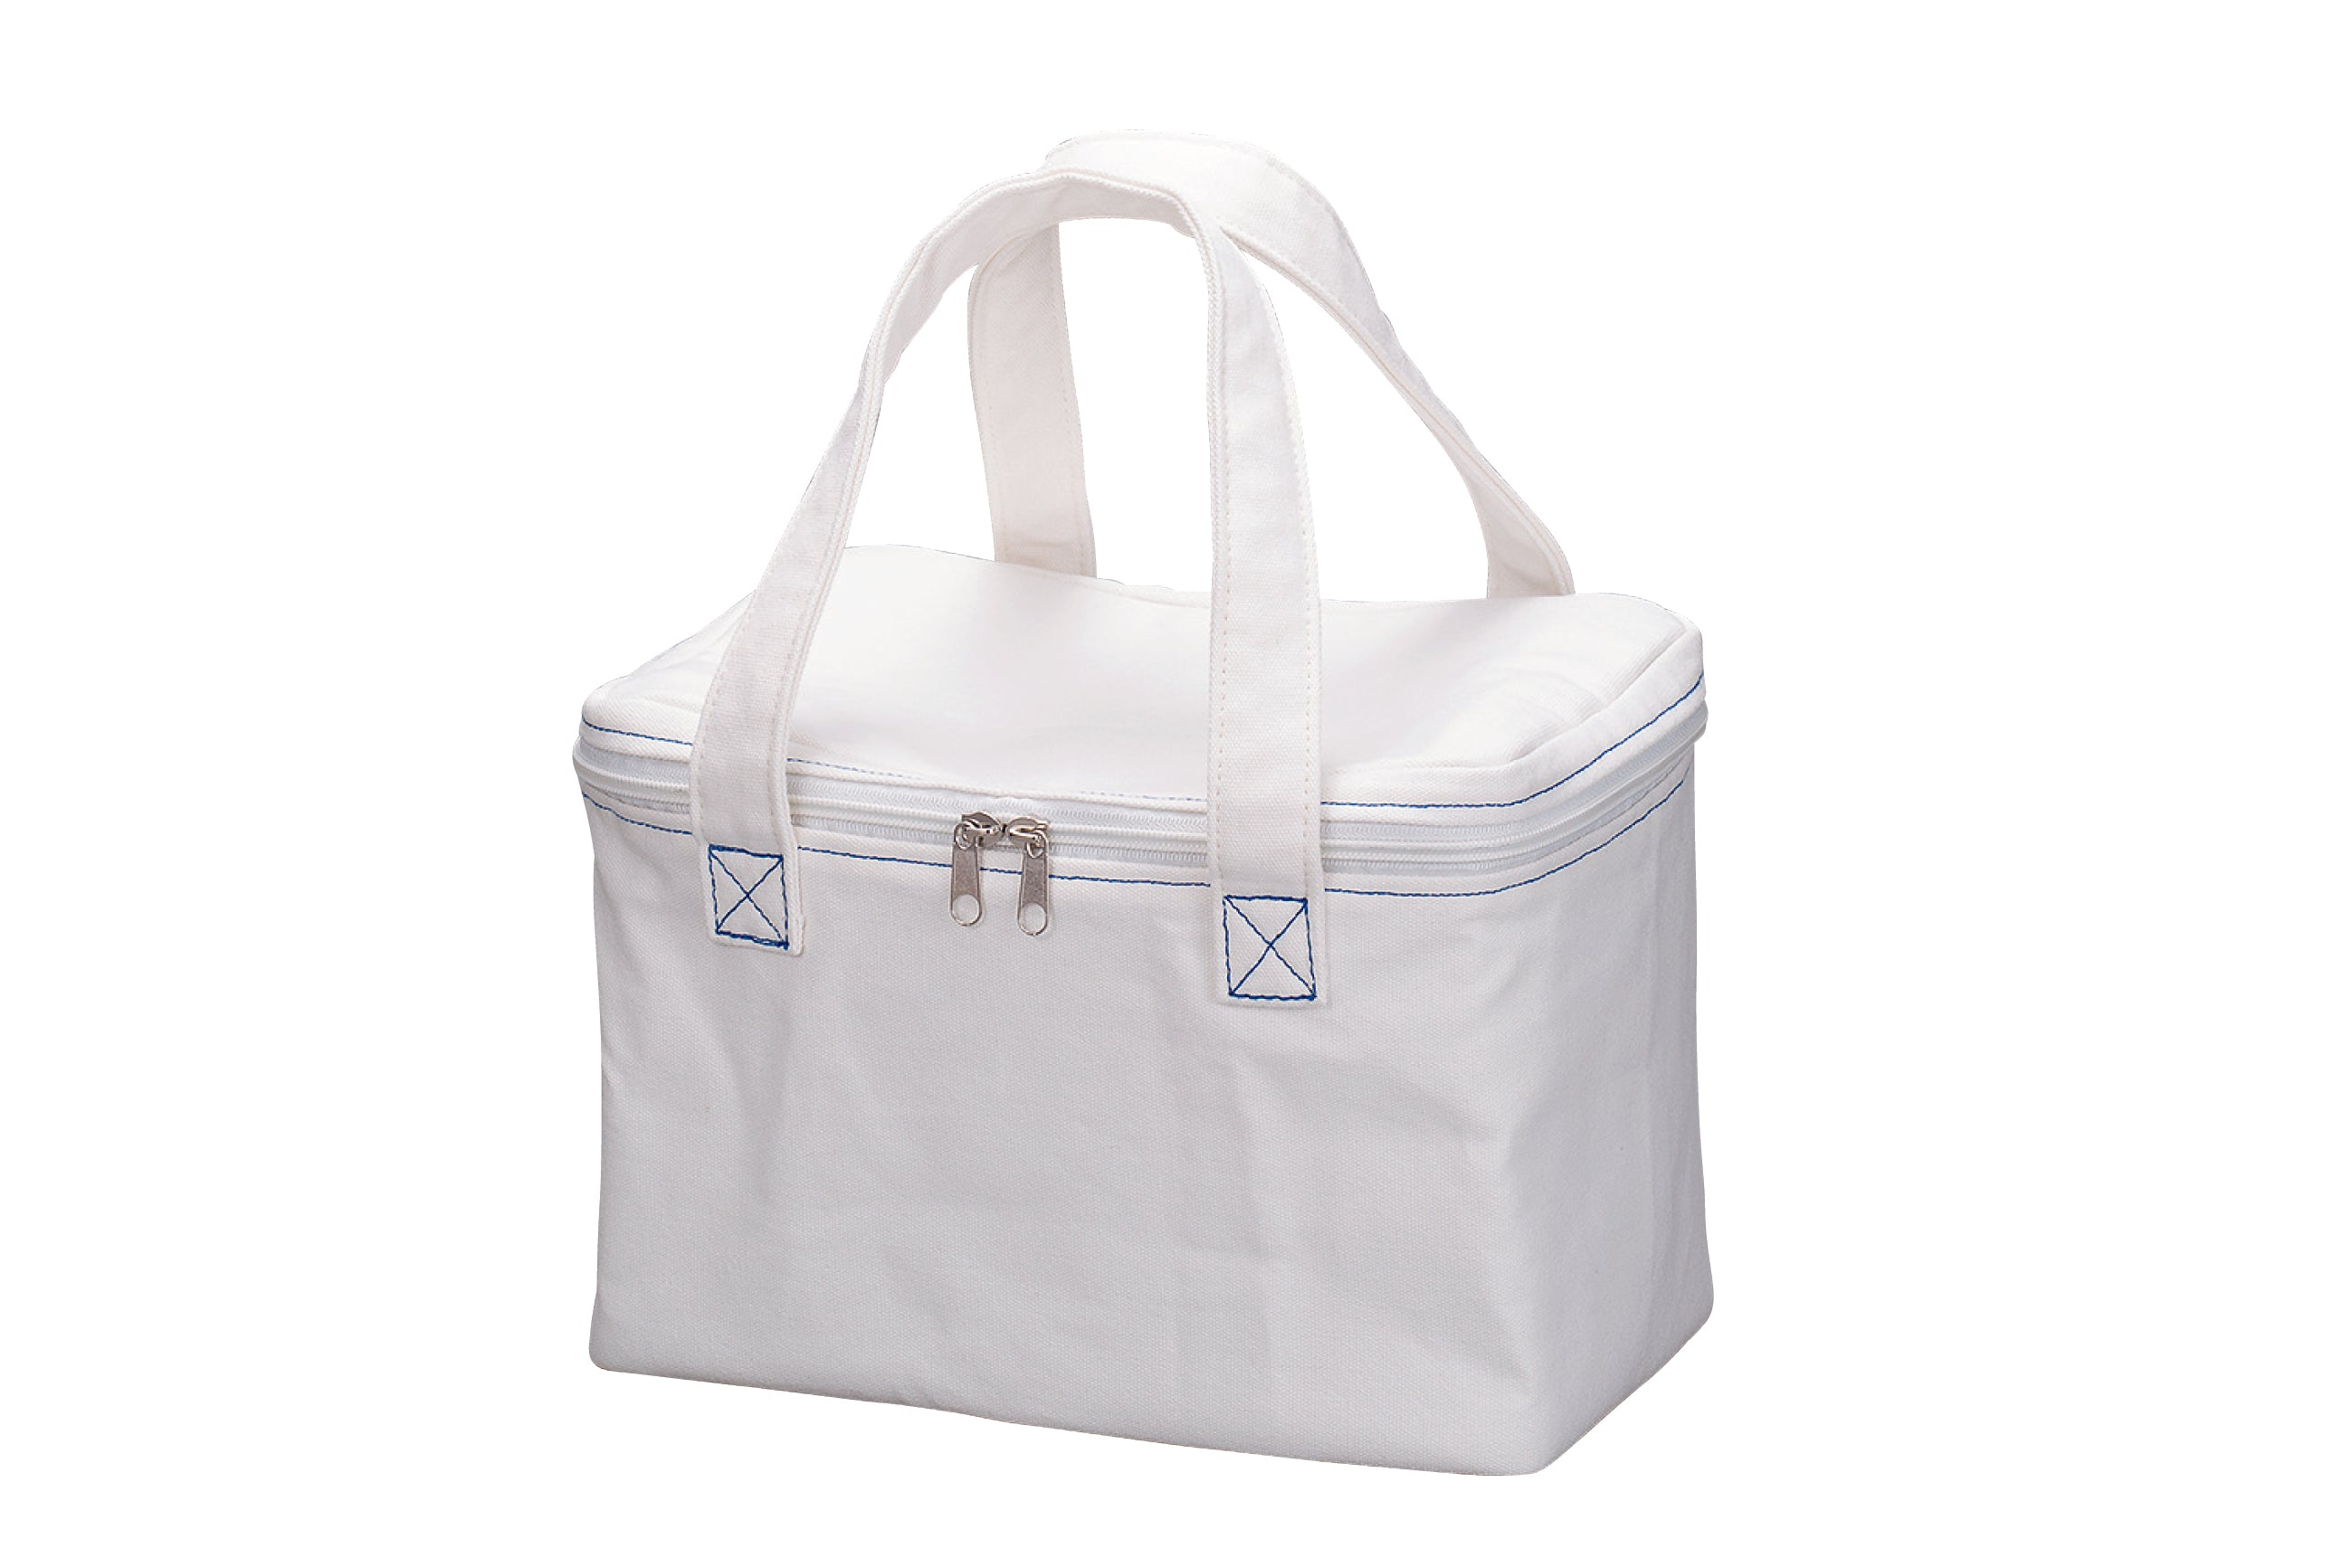 Some Mon Cooler Bag | White by Hakoya - Bento&co Japanese Bento Lunch Boxes and Kitchenware Specialists